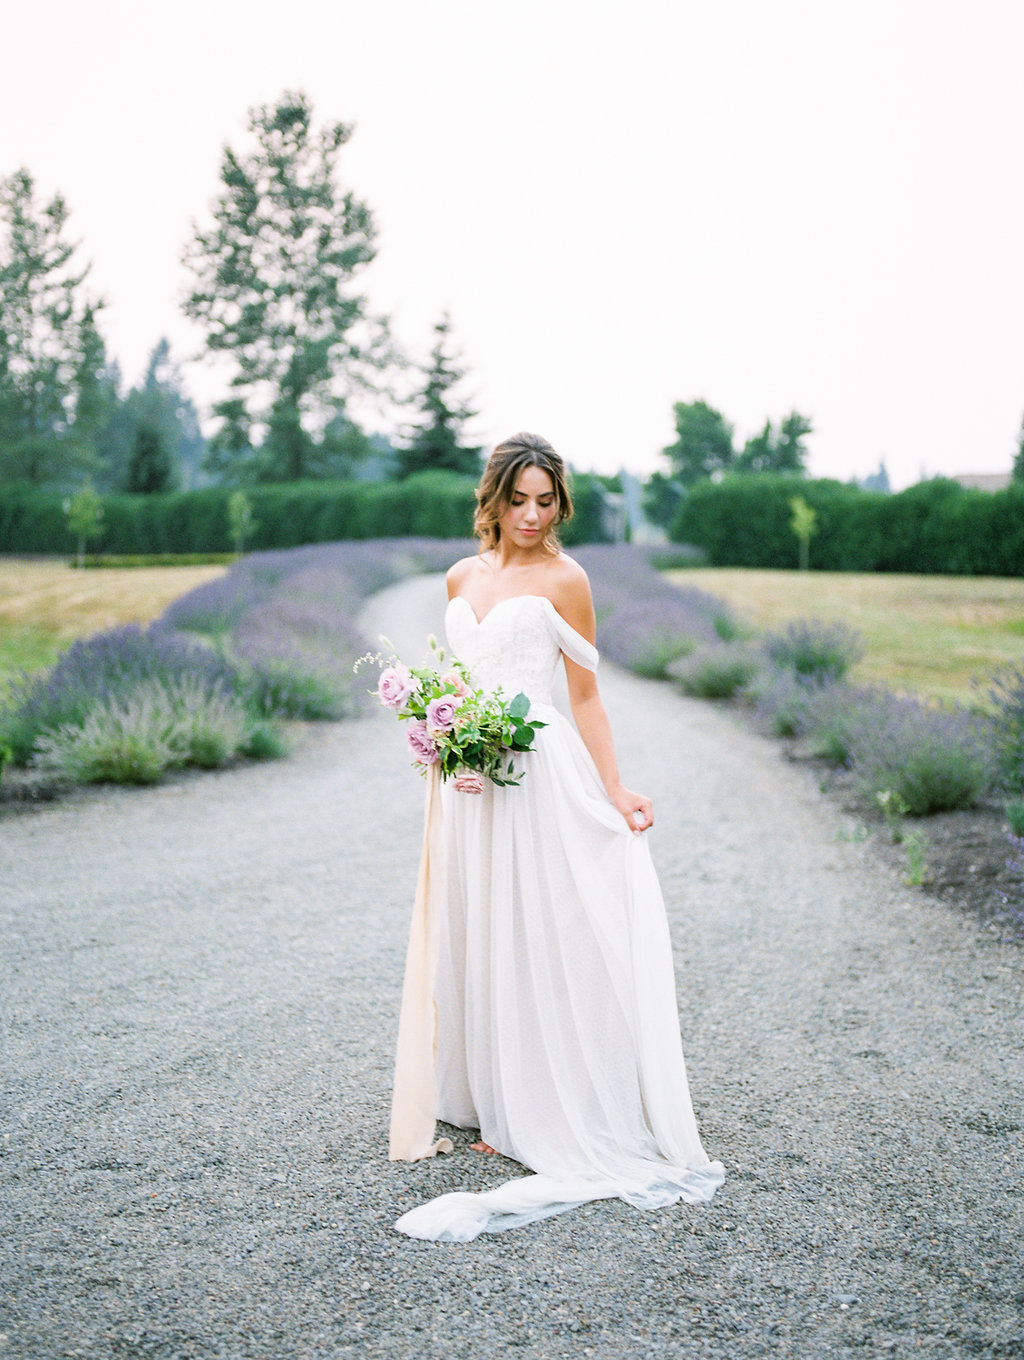 LuxProvenceWeddingInspired-SavanMentorshipbyJonandMochPhotography(71of75).jpg